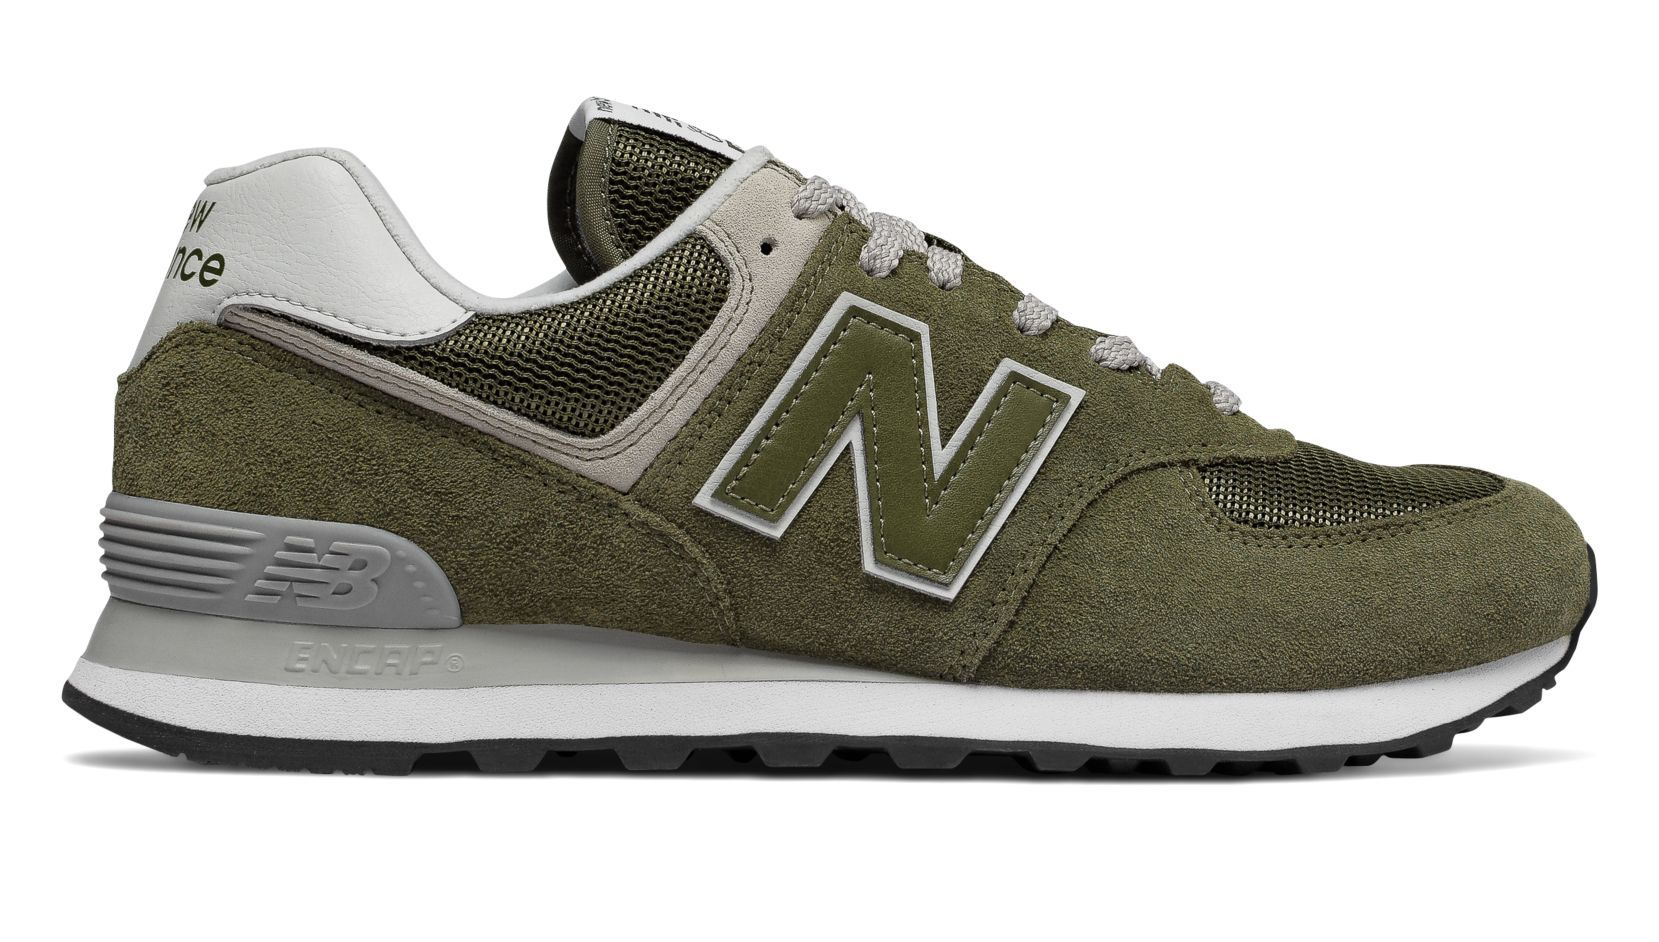 huge selection of 22843 11e4d New Balance 574, Olive | New Balance in 2019 | New balance ...